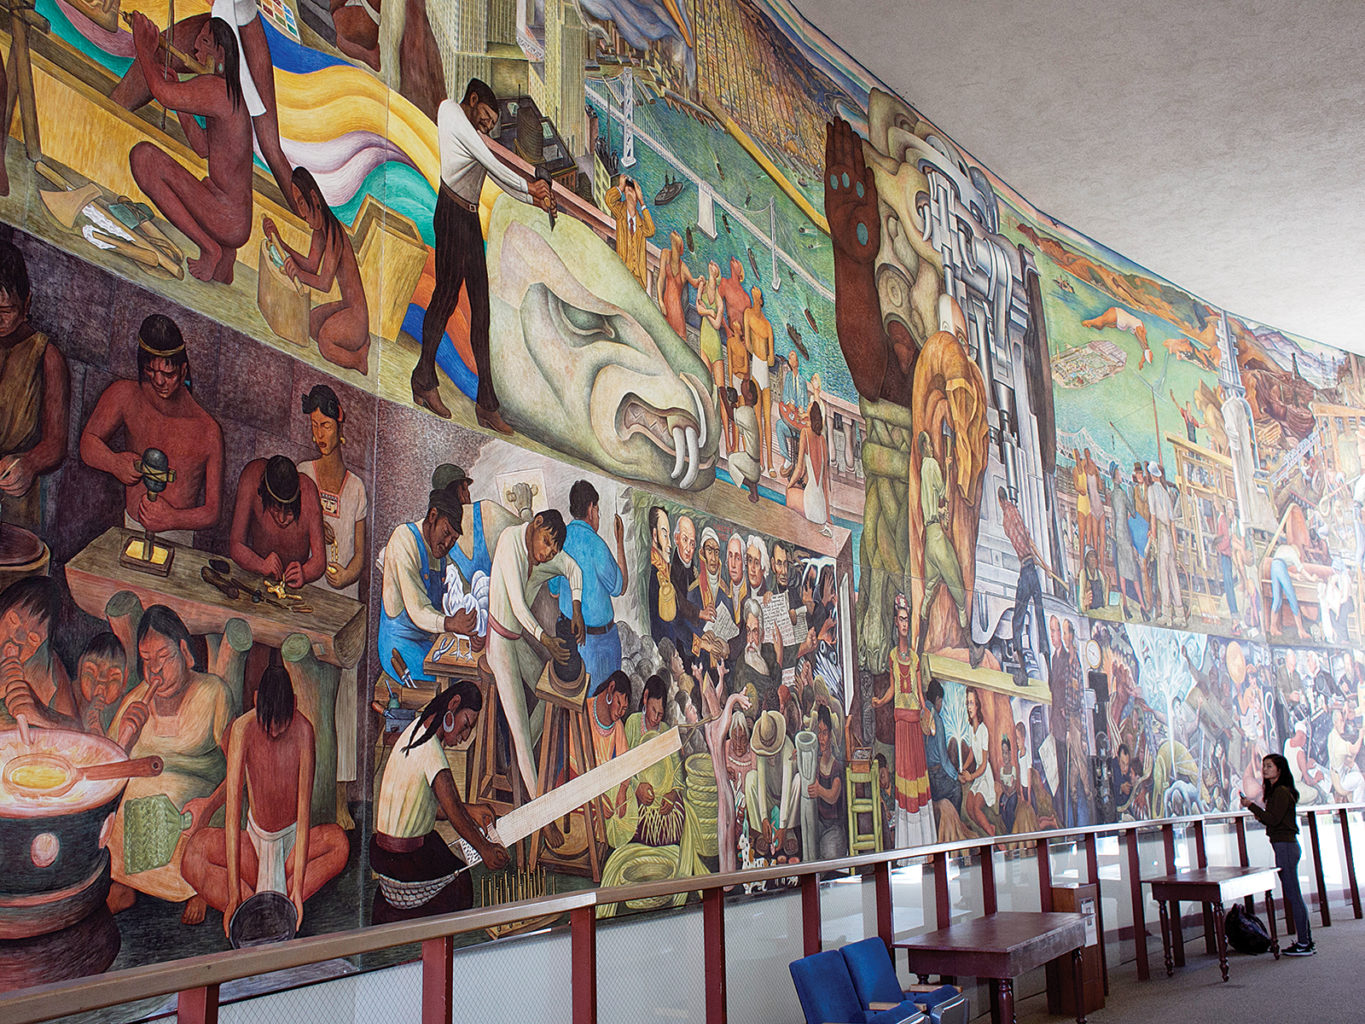 """Diego Rivera's """"Pan-American Unity"""" mural, painted in  1940, will be permanently moved to CCSF's planned Performing Arts Education Center after its SFMOMA run ends.  (James Chan/Special to S.F. Examiner)"""